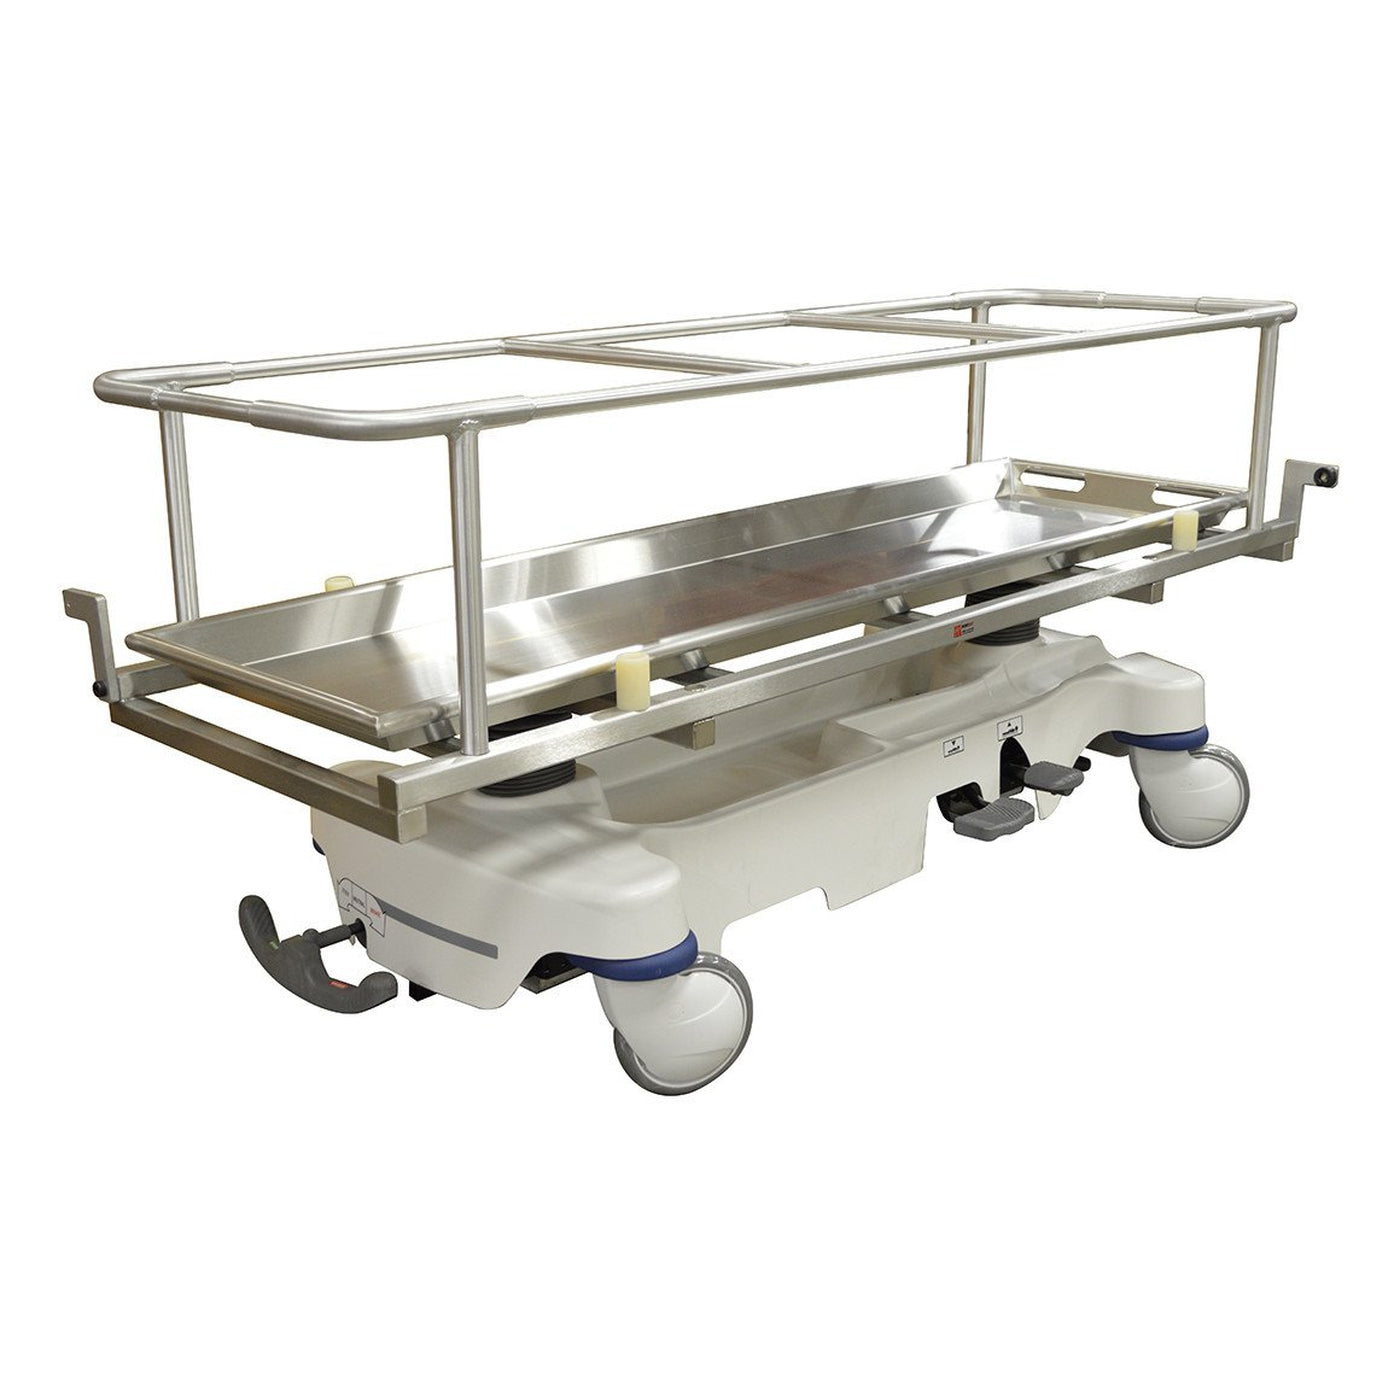 Hydraulic Covered Cadaver Carrier with Rollers-Body Transporter-Mortech Manufacturing Company Inc. Quality Stainless Steel Autopsy, Morgue, Funeral Home, Necropsy, Veterinary / Anatomy, Dissection Equipment and Accessories